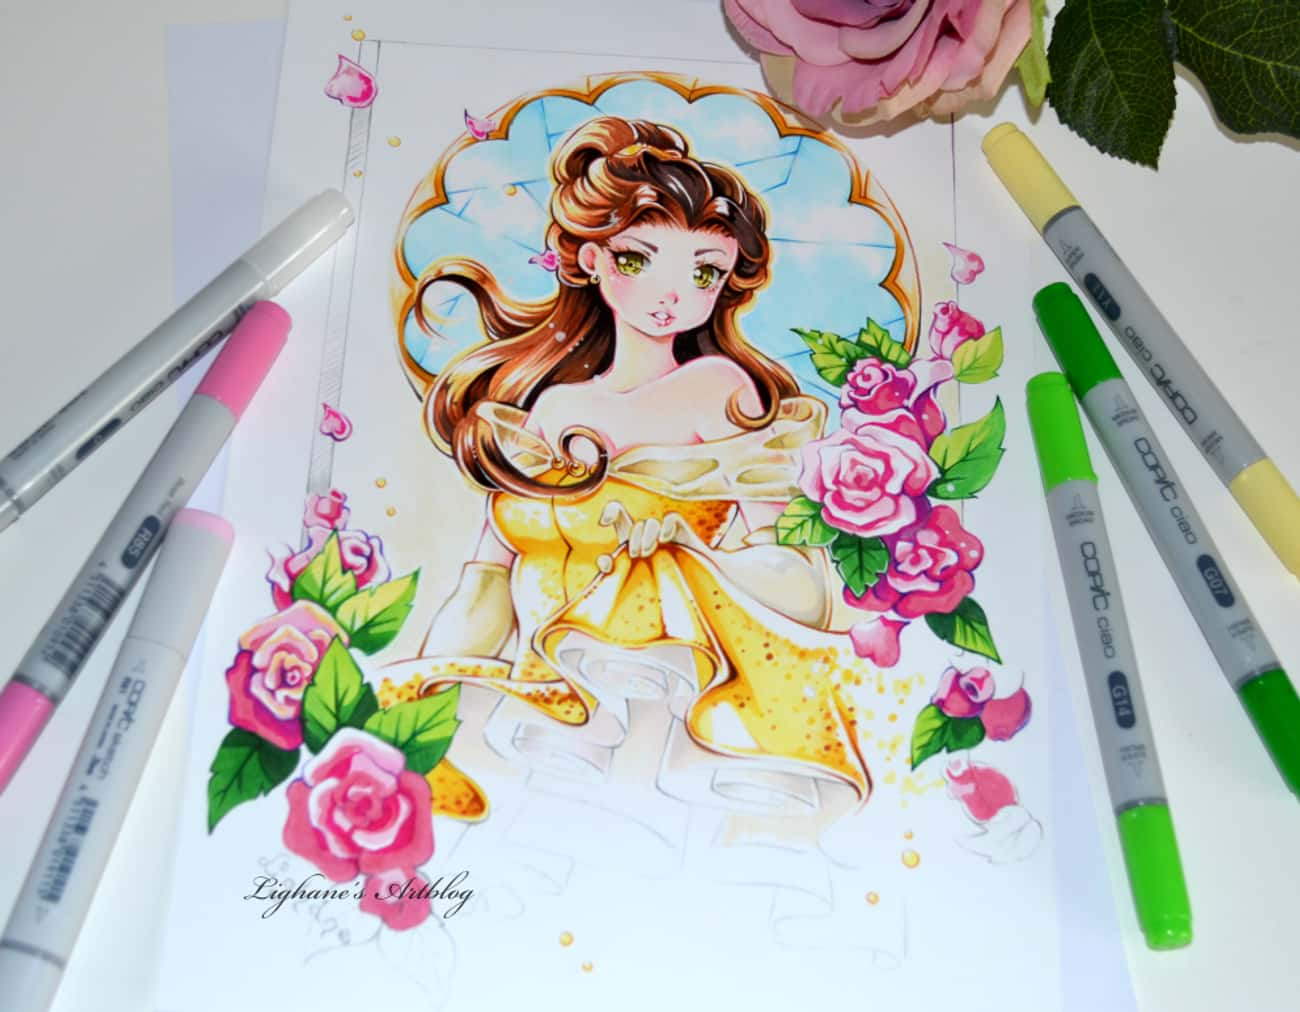 Belle, Beauty and the Beast is listed (or ranked) 4 on the list 15 Disney Princesses Drawn As Anime Characters